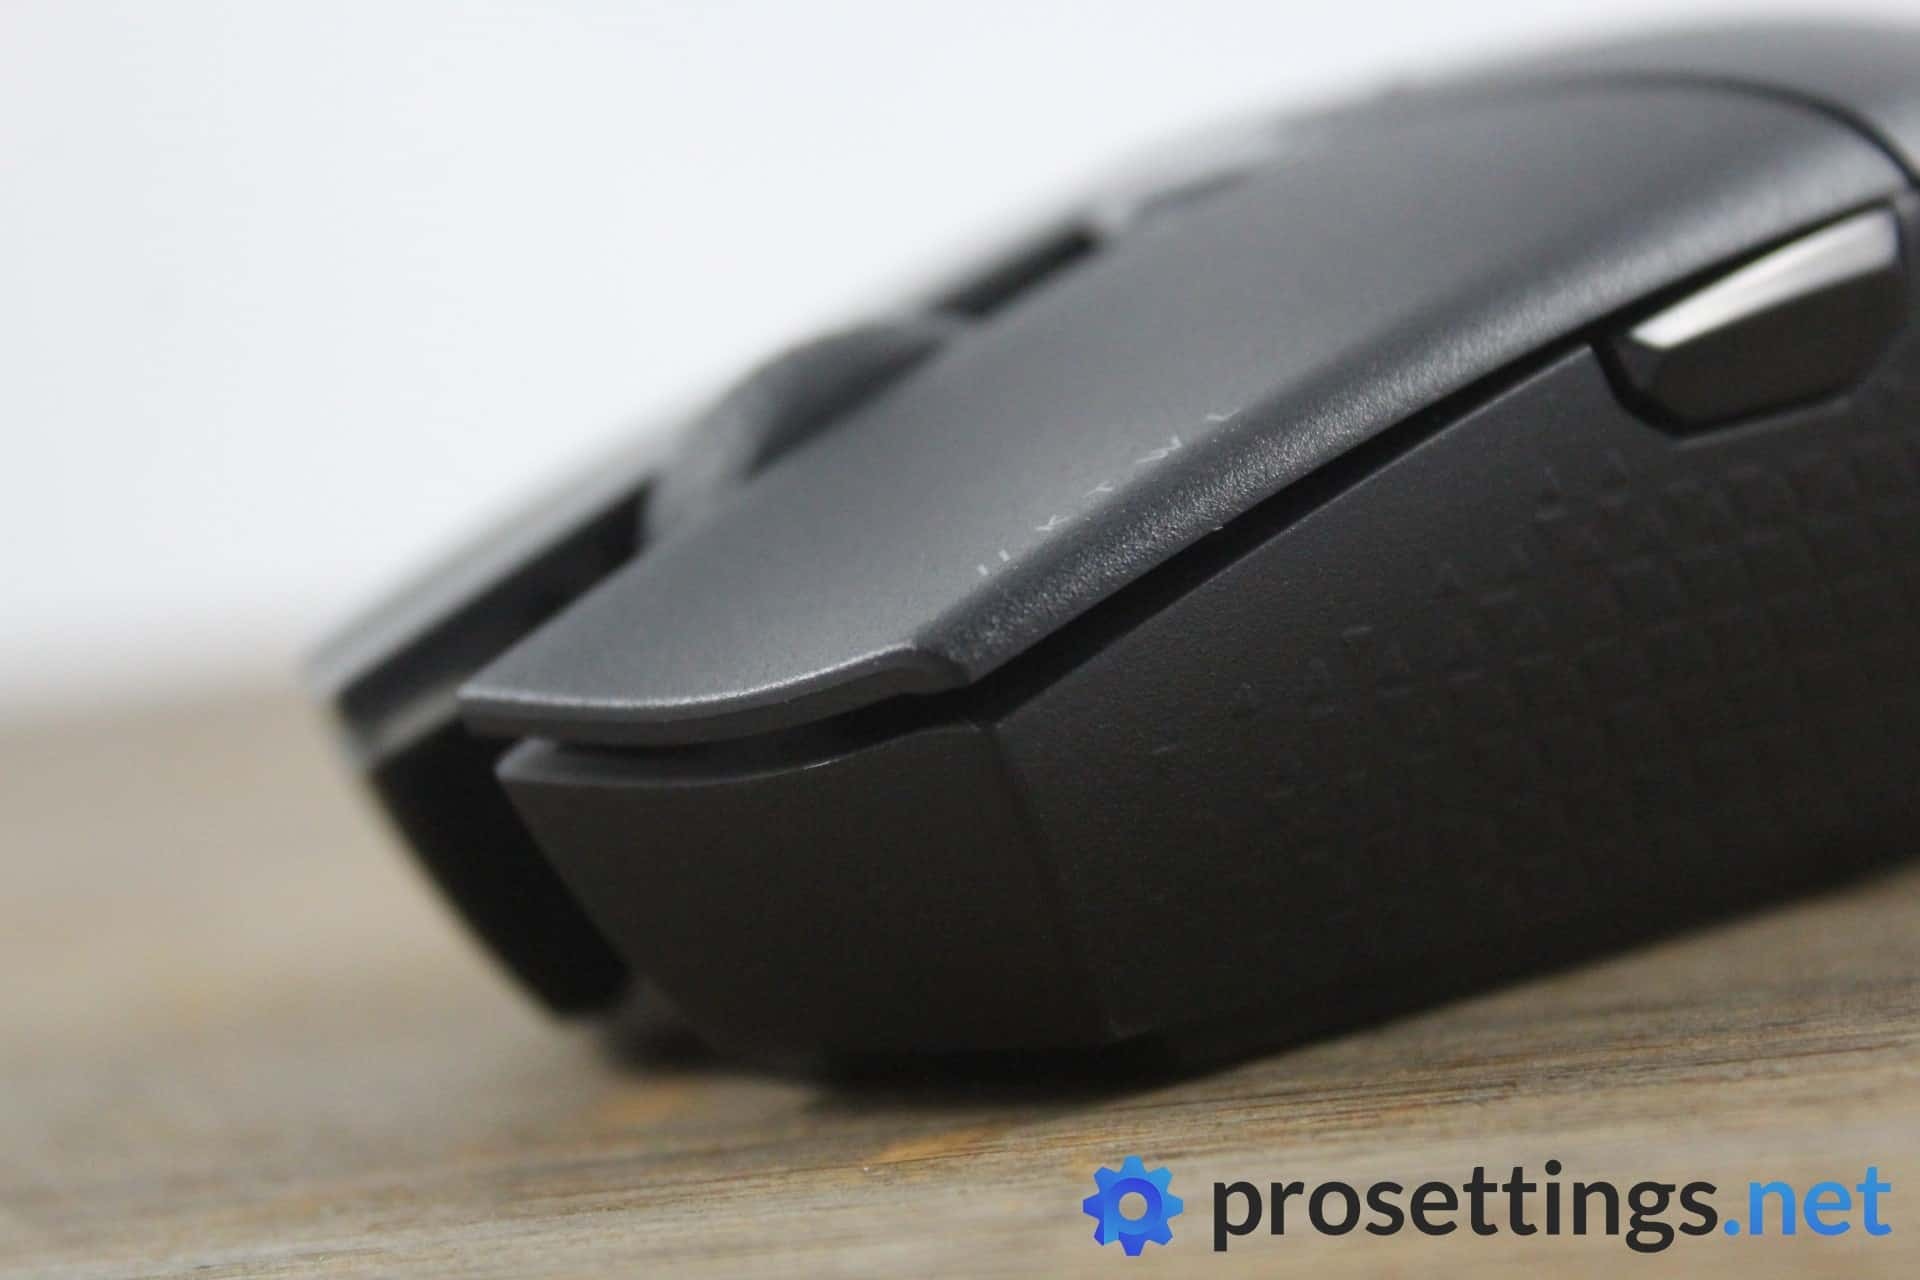 Corsair Katar Pro Wireless Review Buttons and Scroll